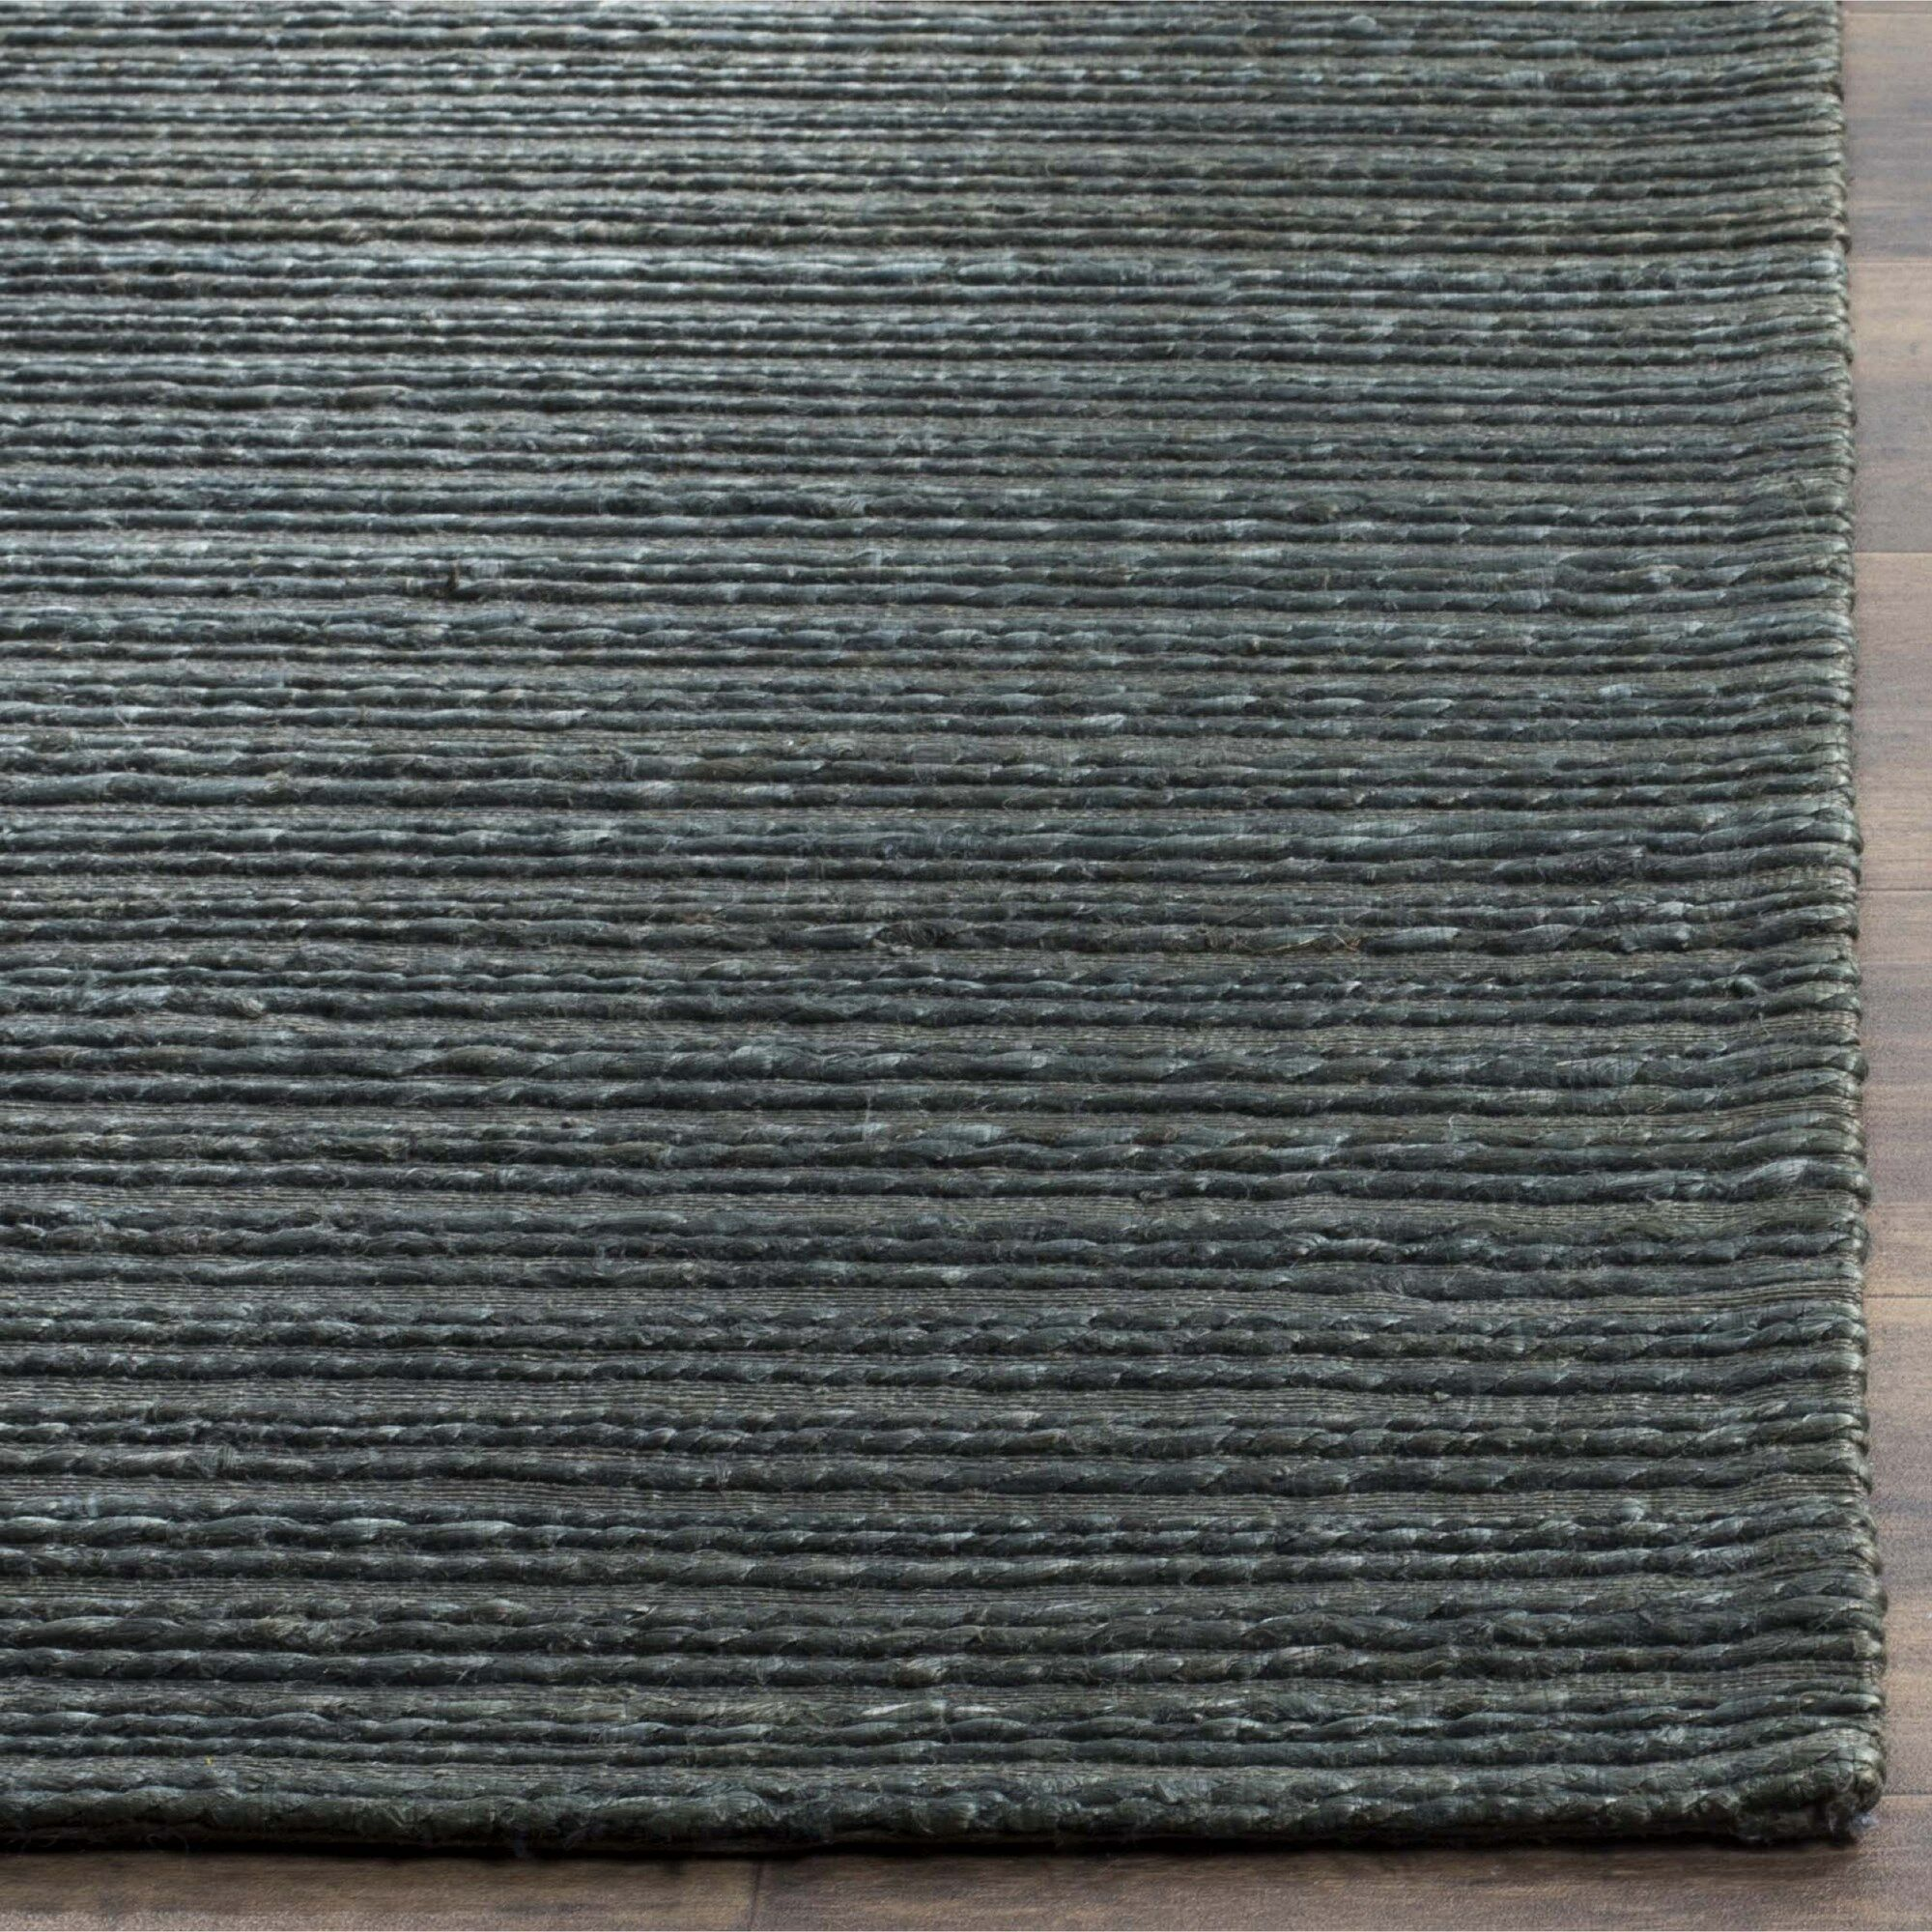 Abia Hand-Woven Dark Green Area Rug Rug Size: Rectangle 6' x 9'